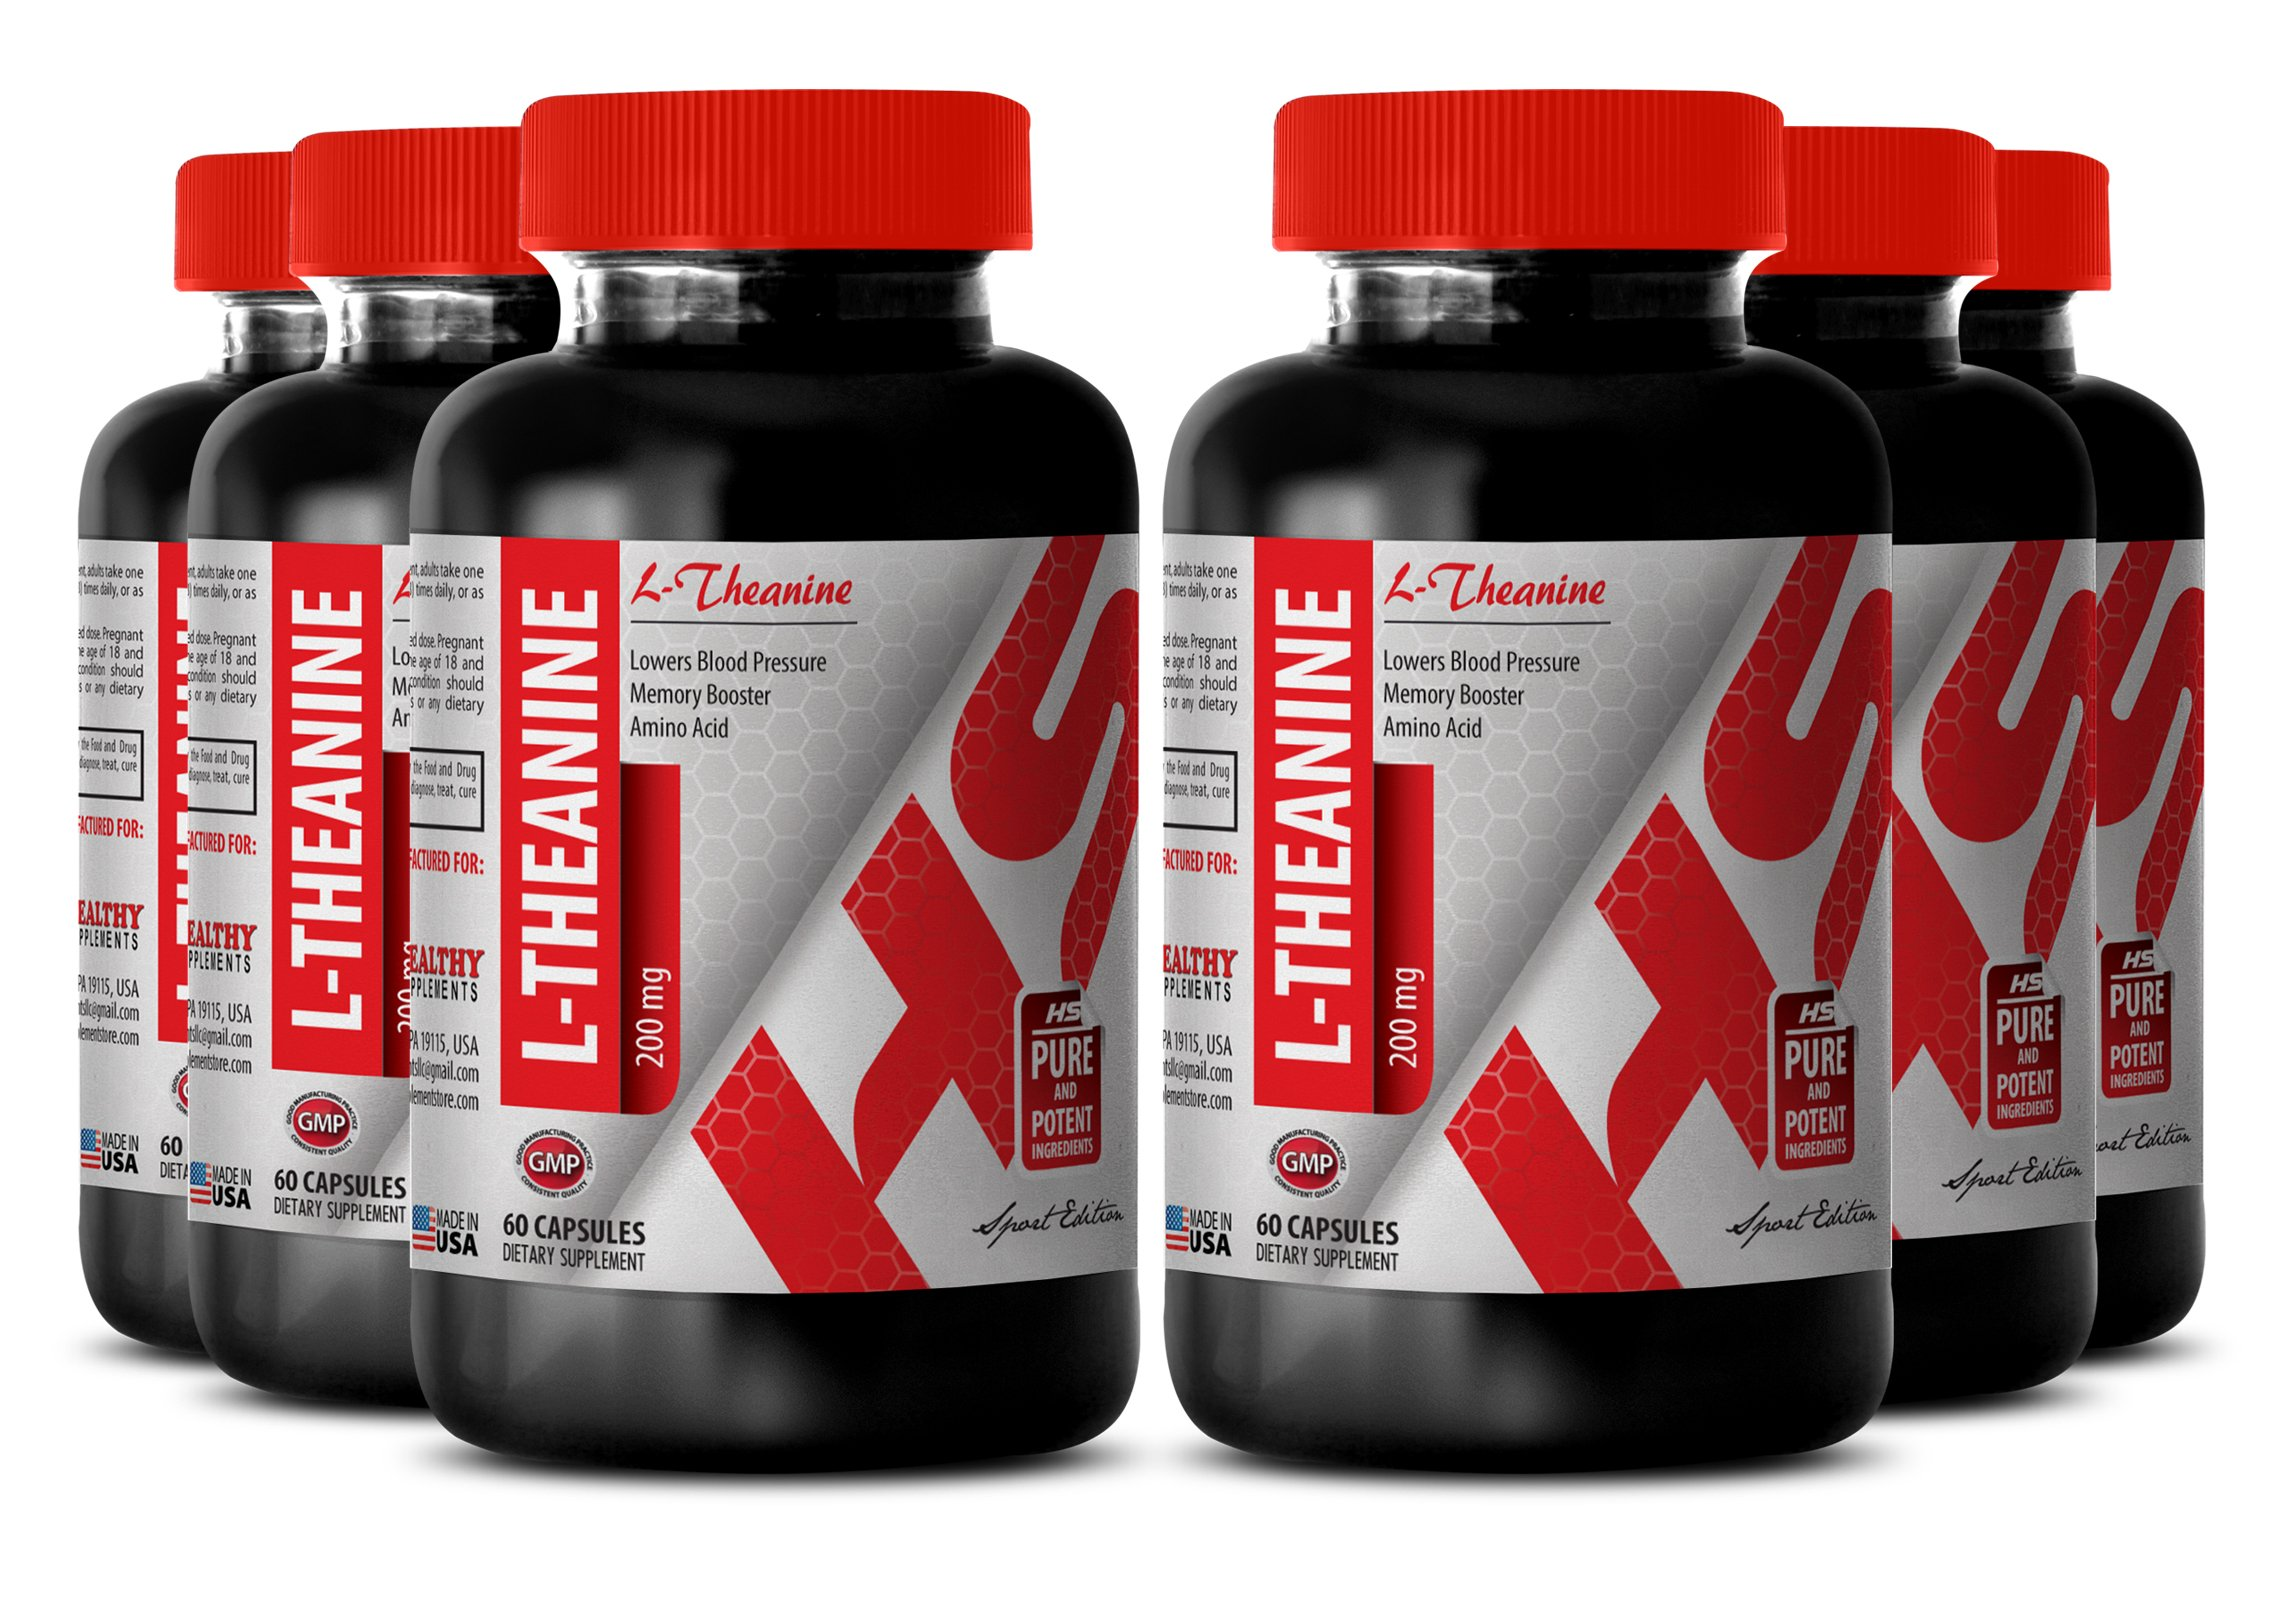 Theanine extract - NATURAL L-THEANINE 200MG - energy booster (6 Bottles)